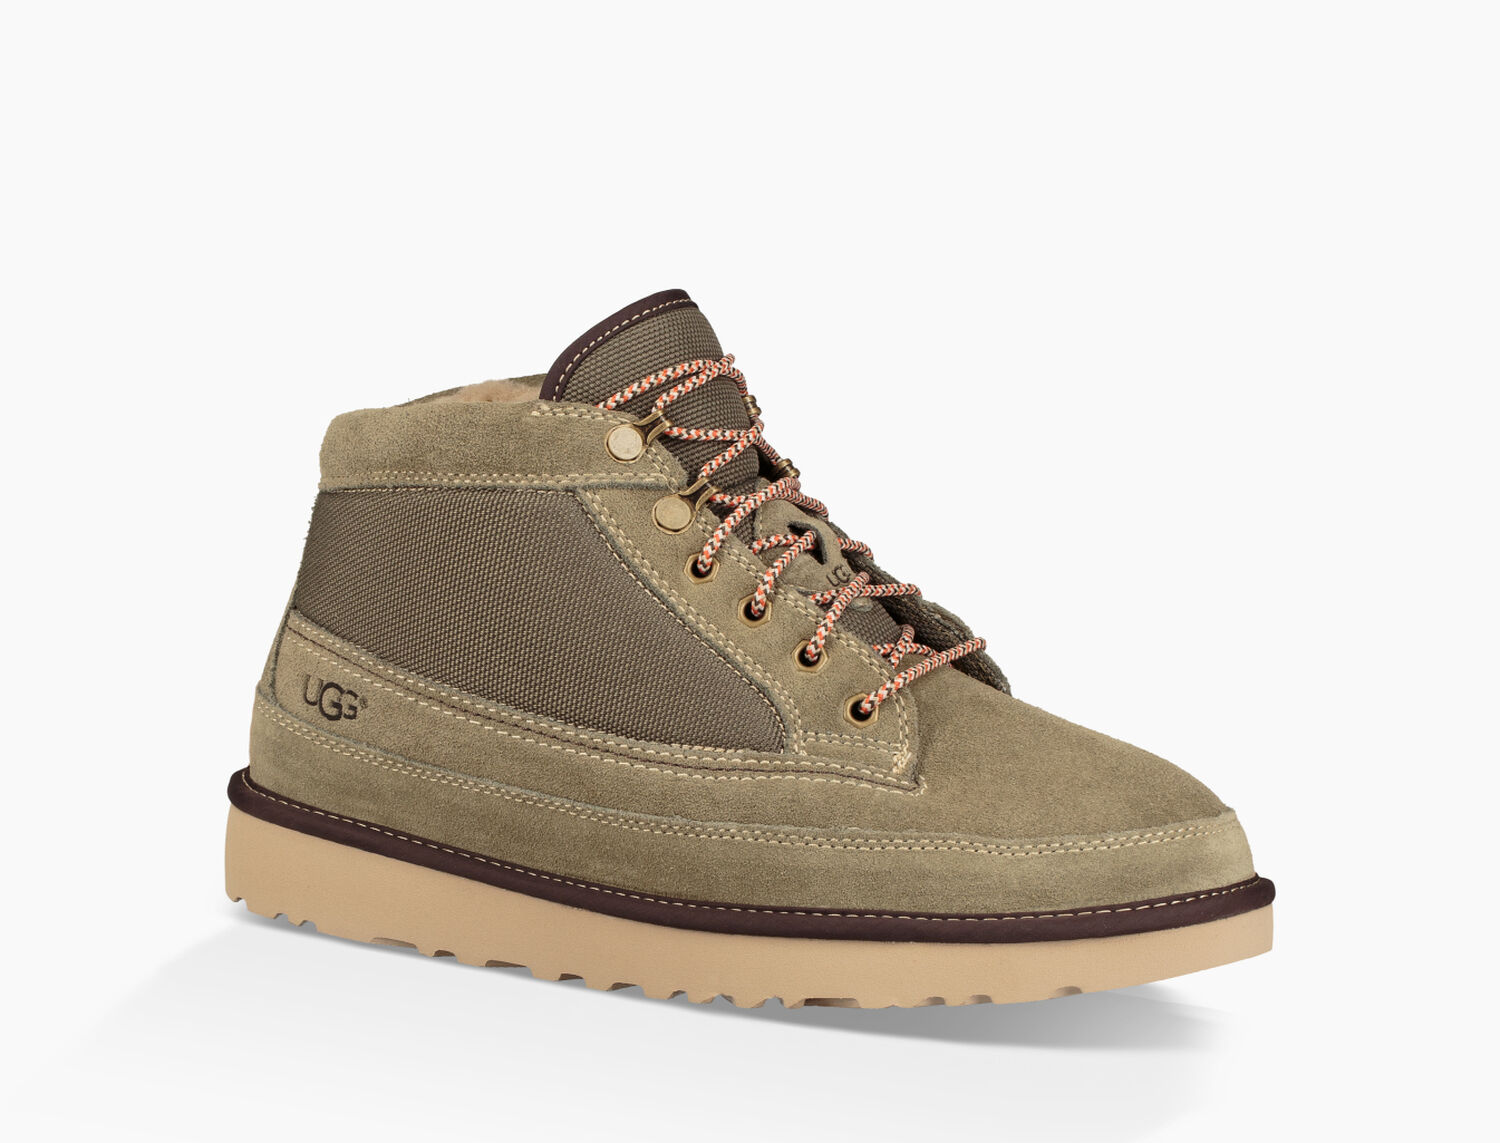 67042d10610 Men's Share this product Highland Field Boot